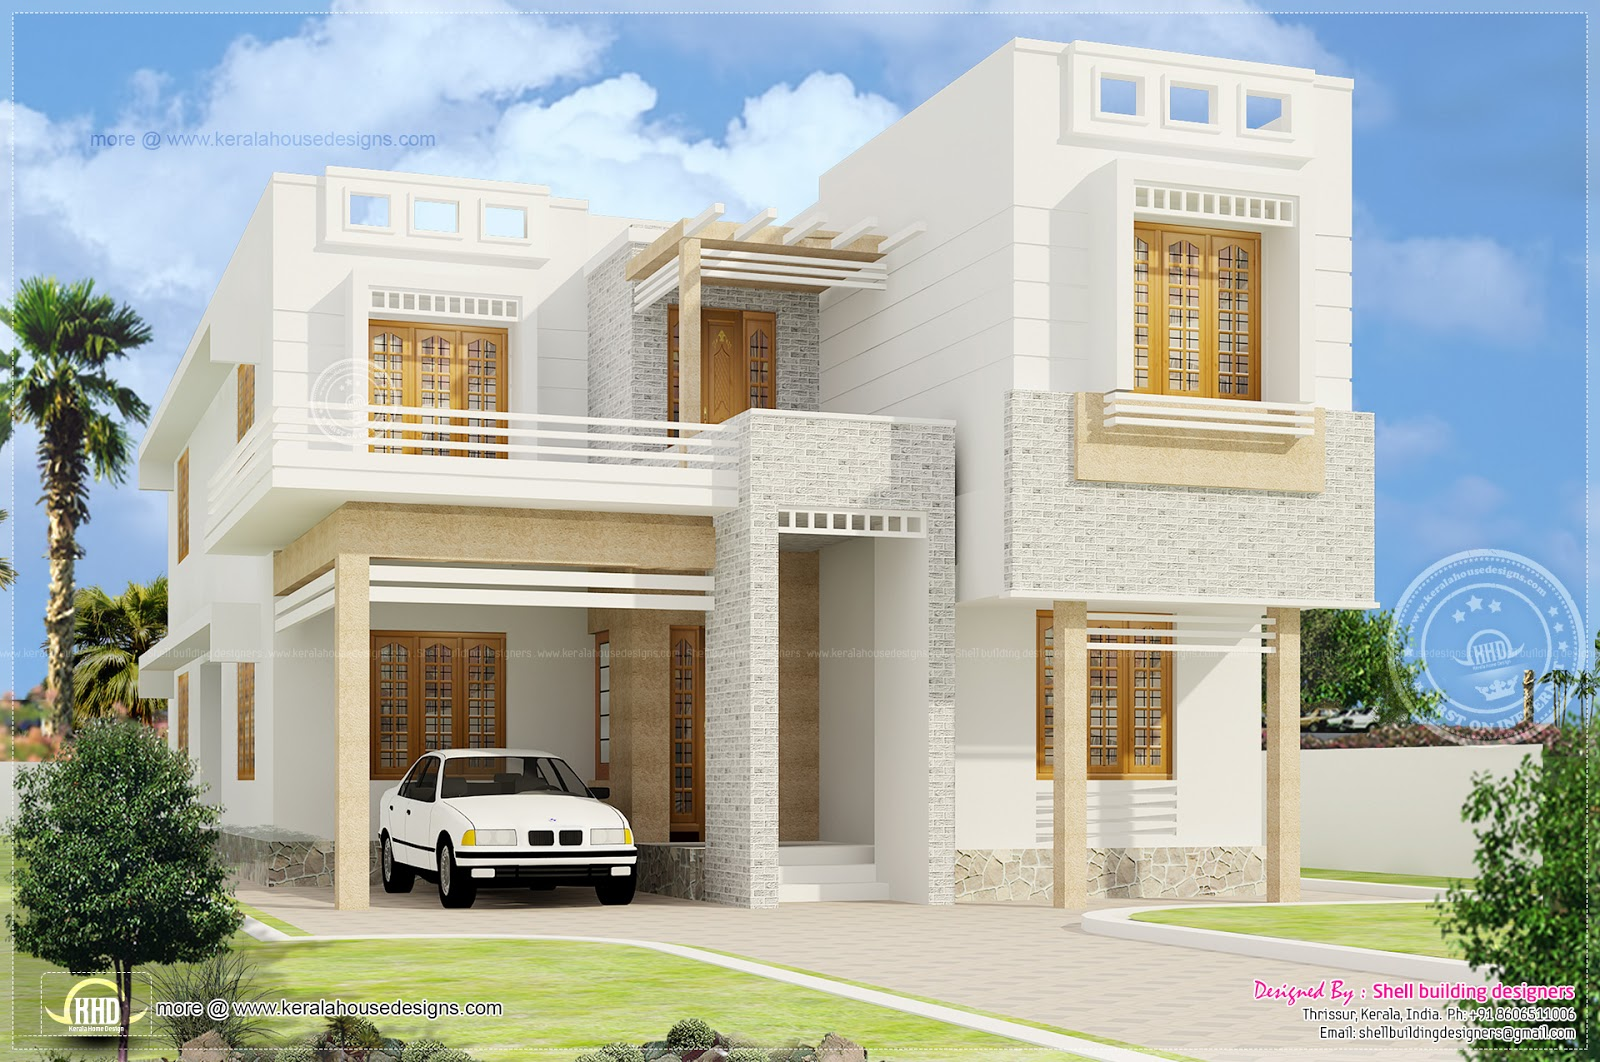 may 2013 - kerala home design and floor plans